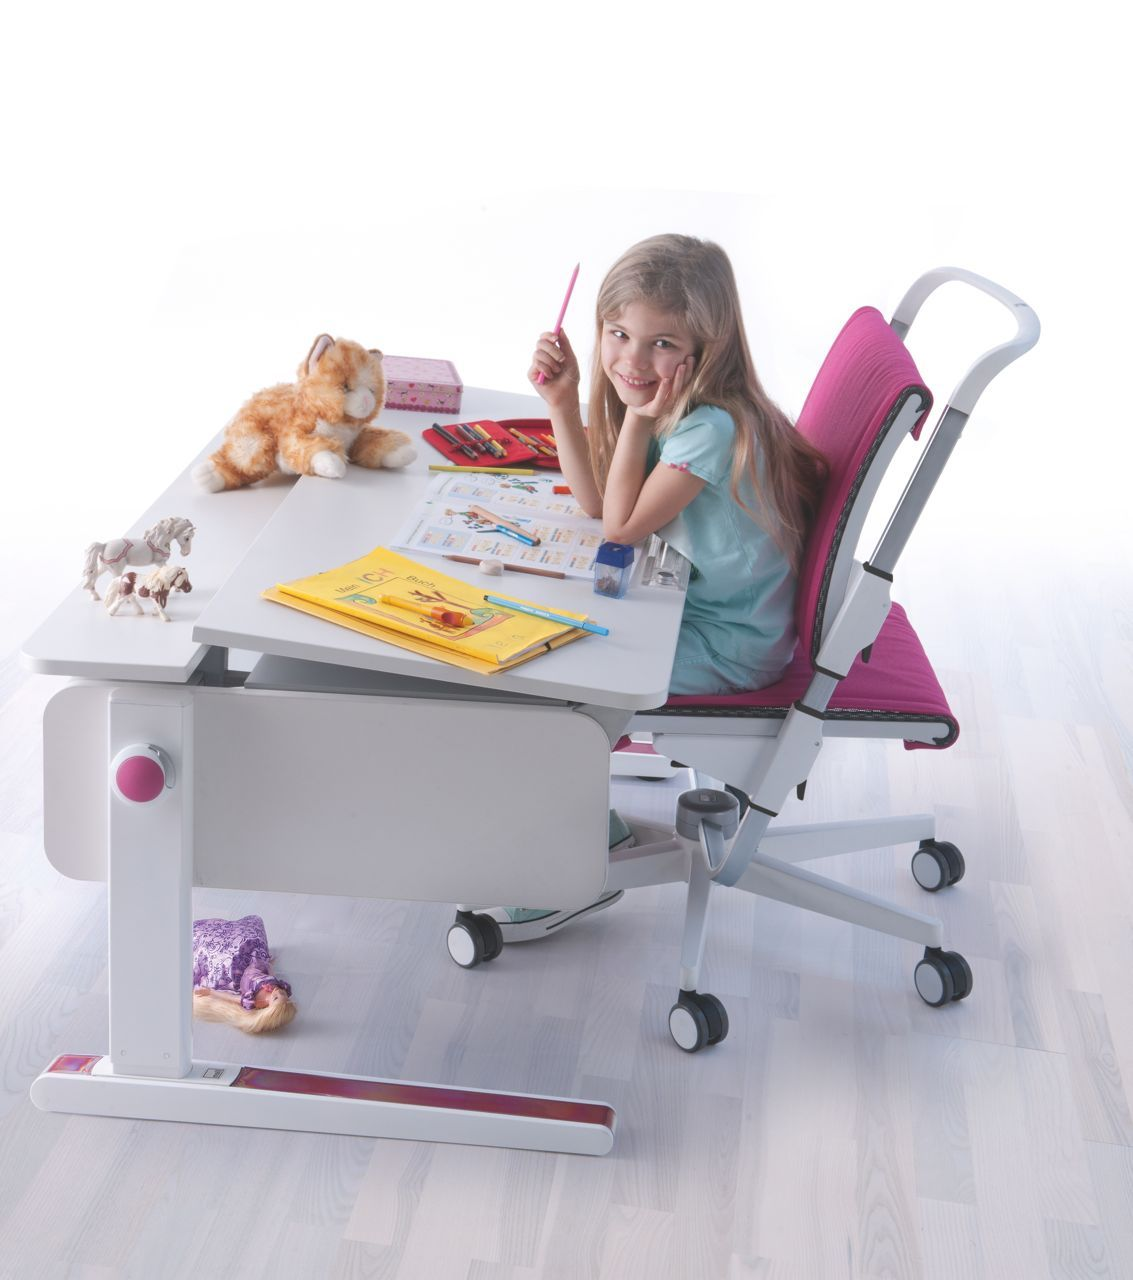 Ergonomic Chair Singapore Wicker Seat Cushion Covers Moll Champion Study Desk With The Scooter